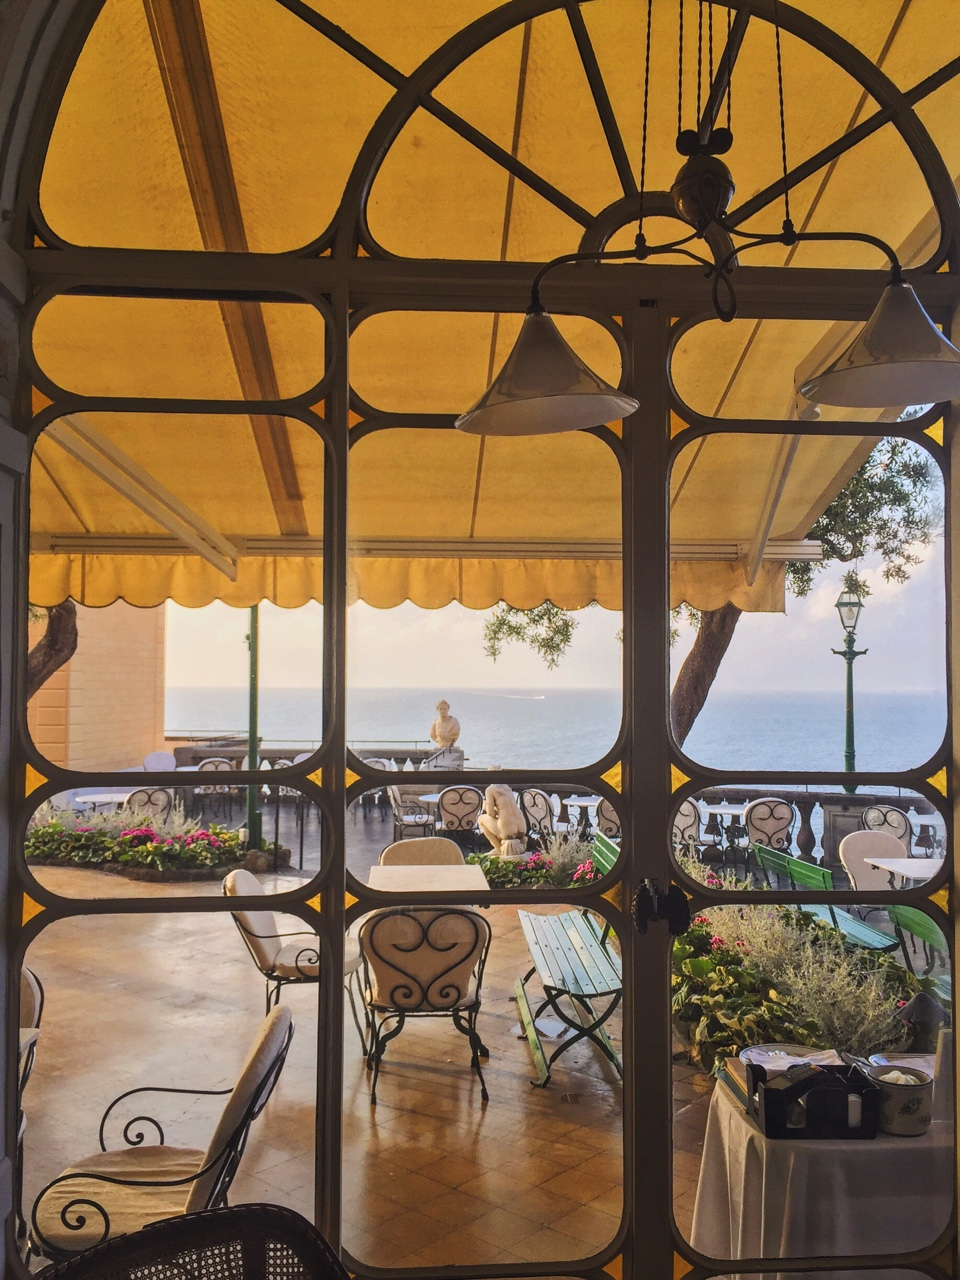 Italian by design 2 #Sorrento #TravelTuesday